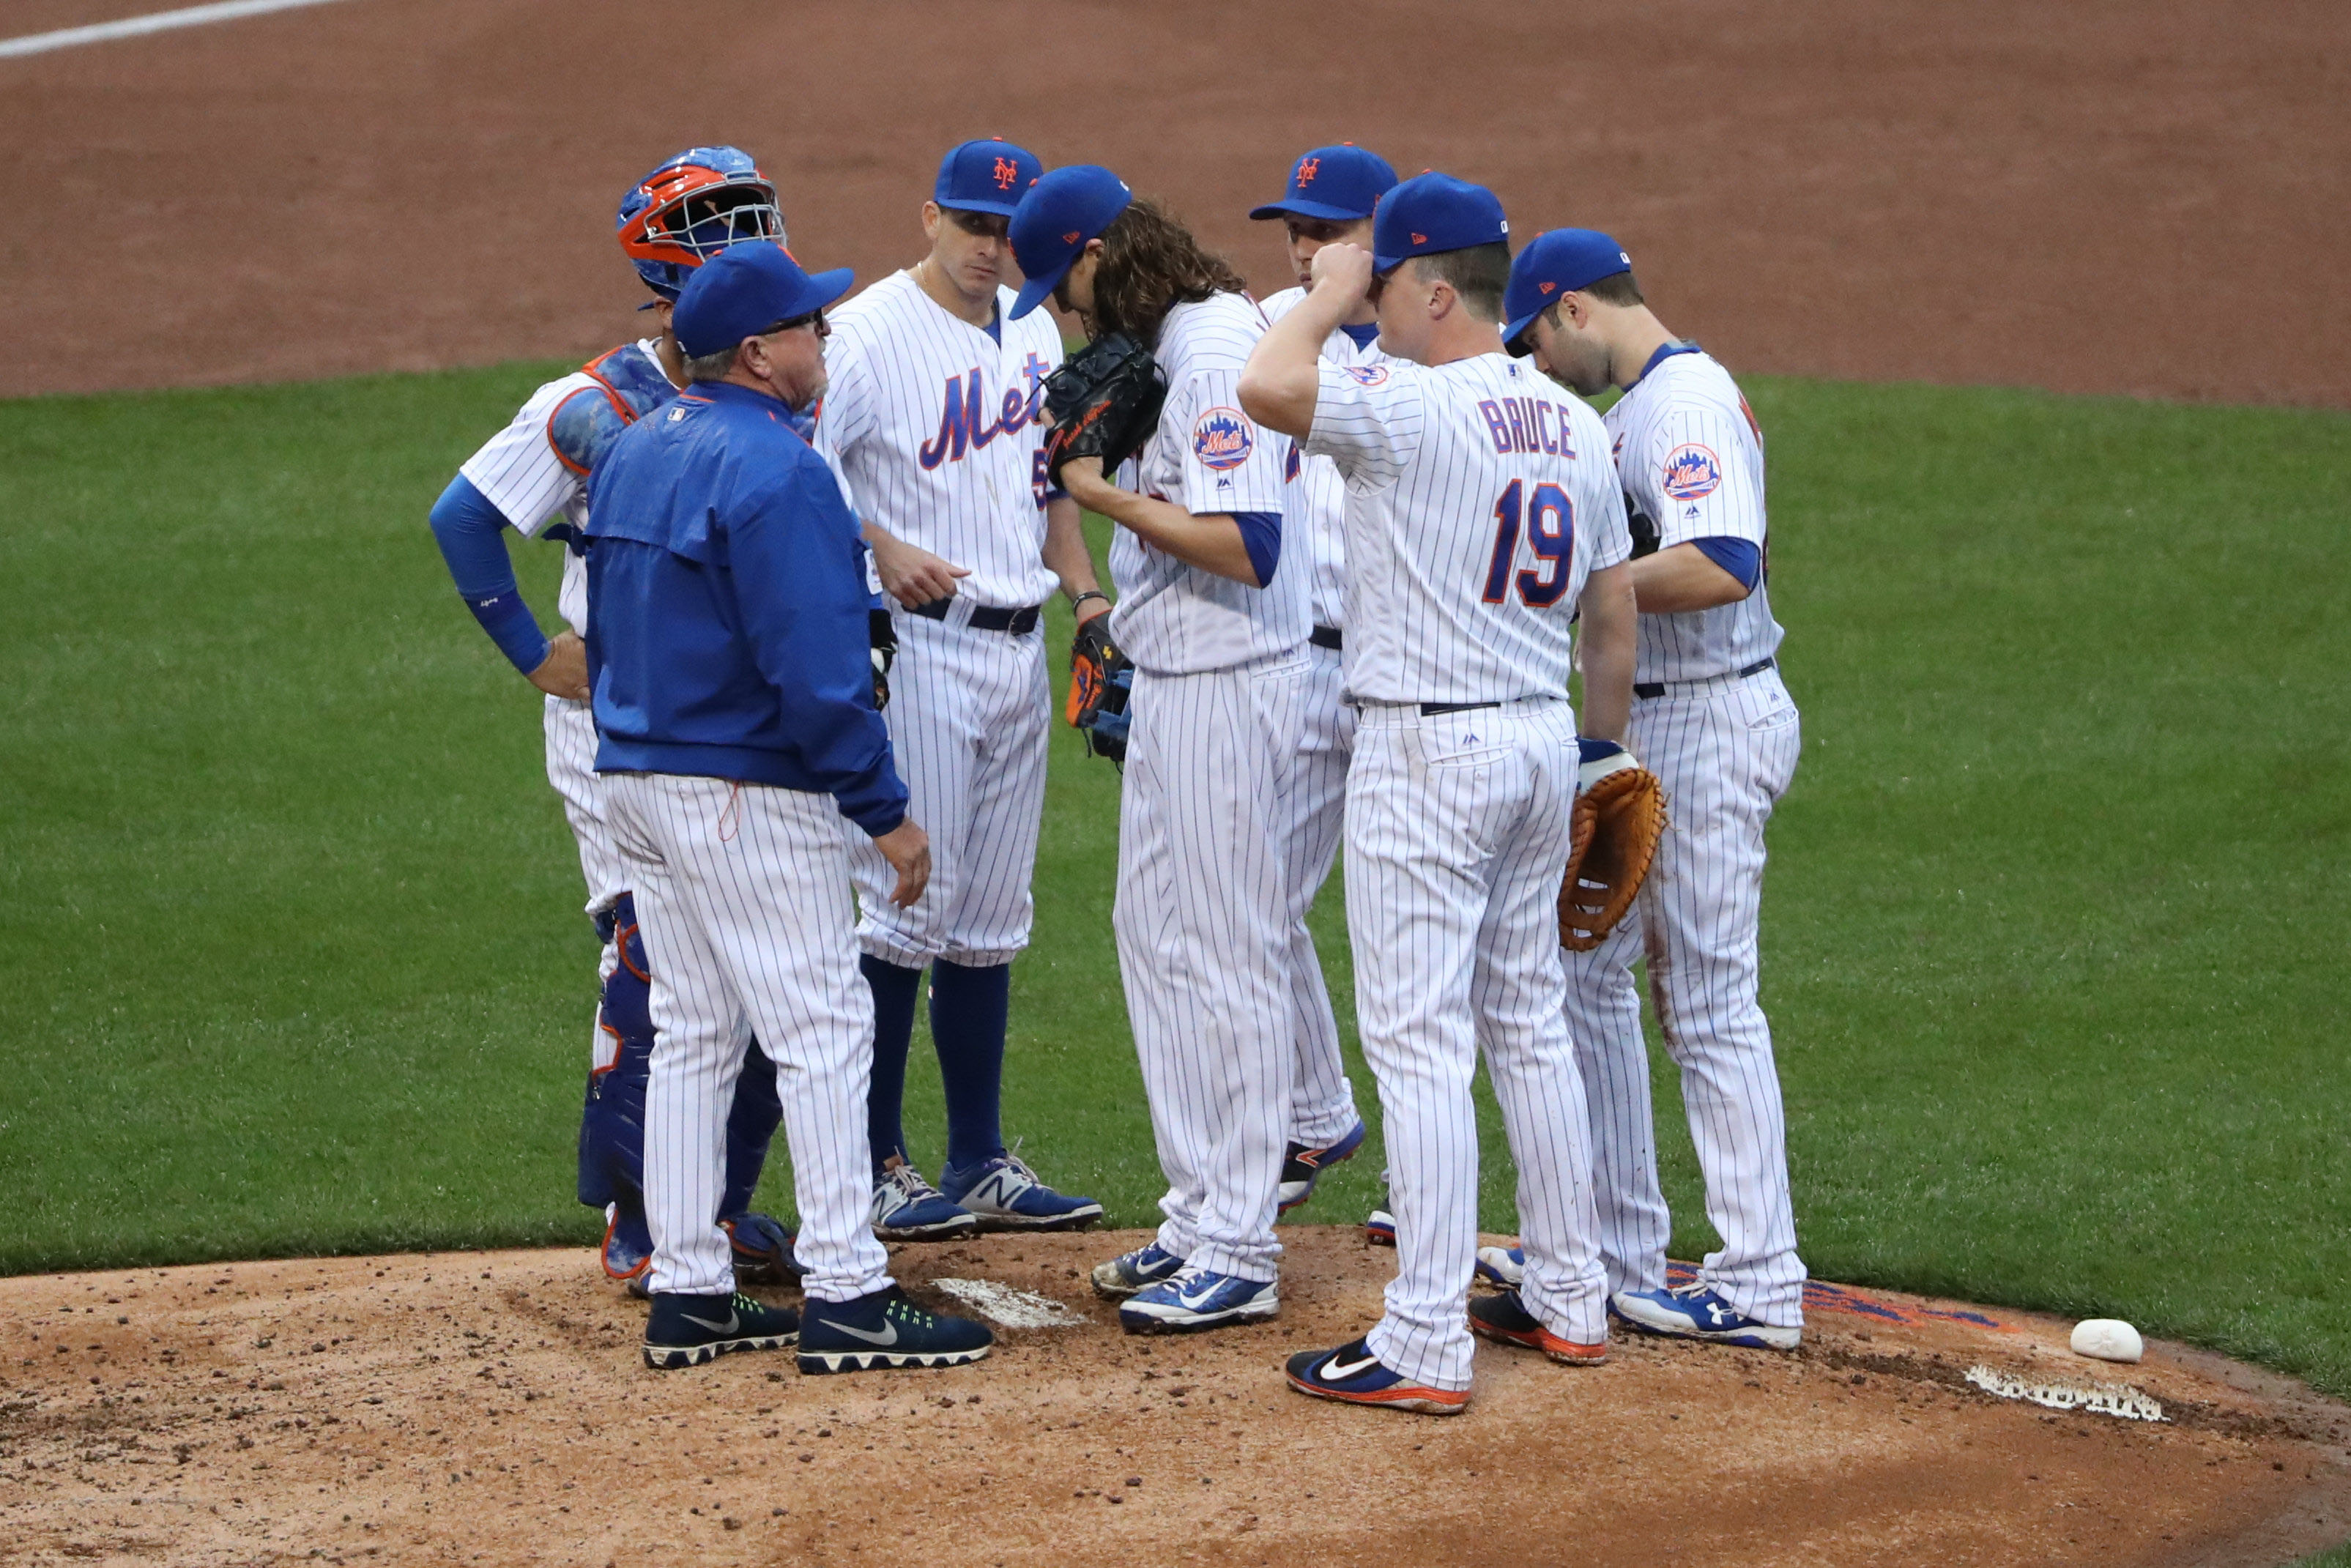 10025487-mlb-washington-nationals-at-new-york-mets-1